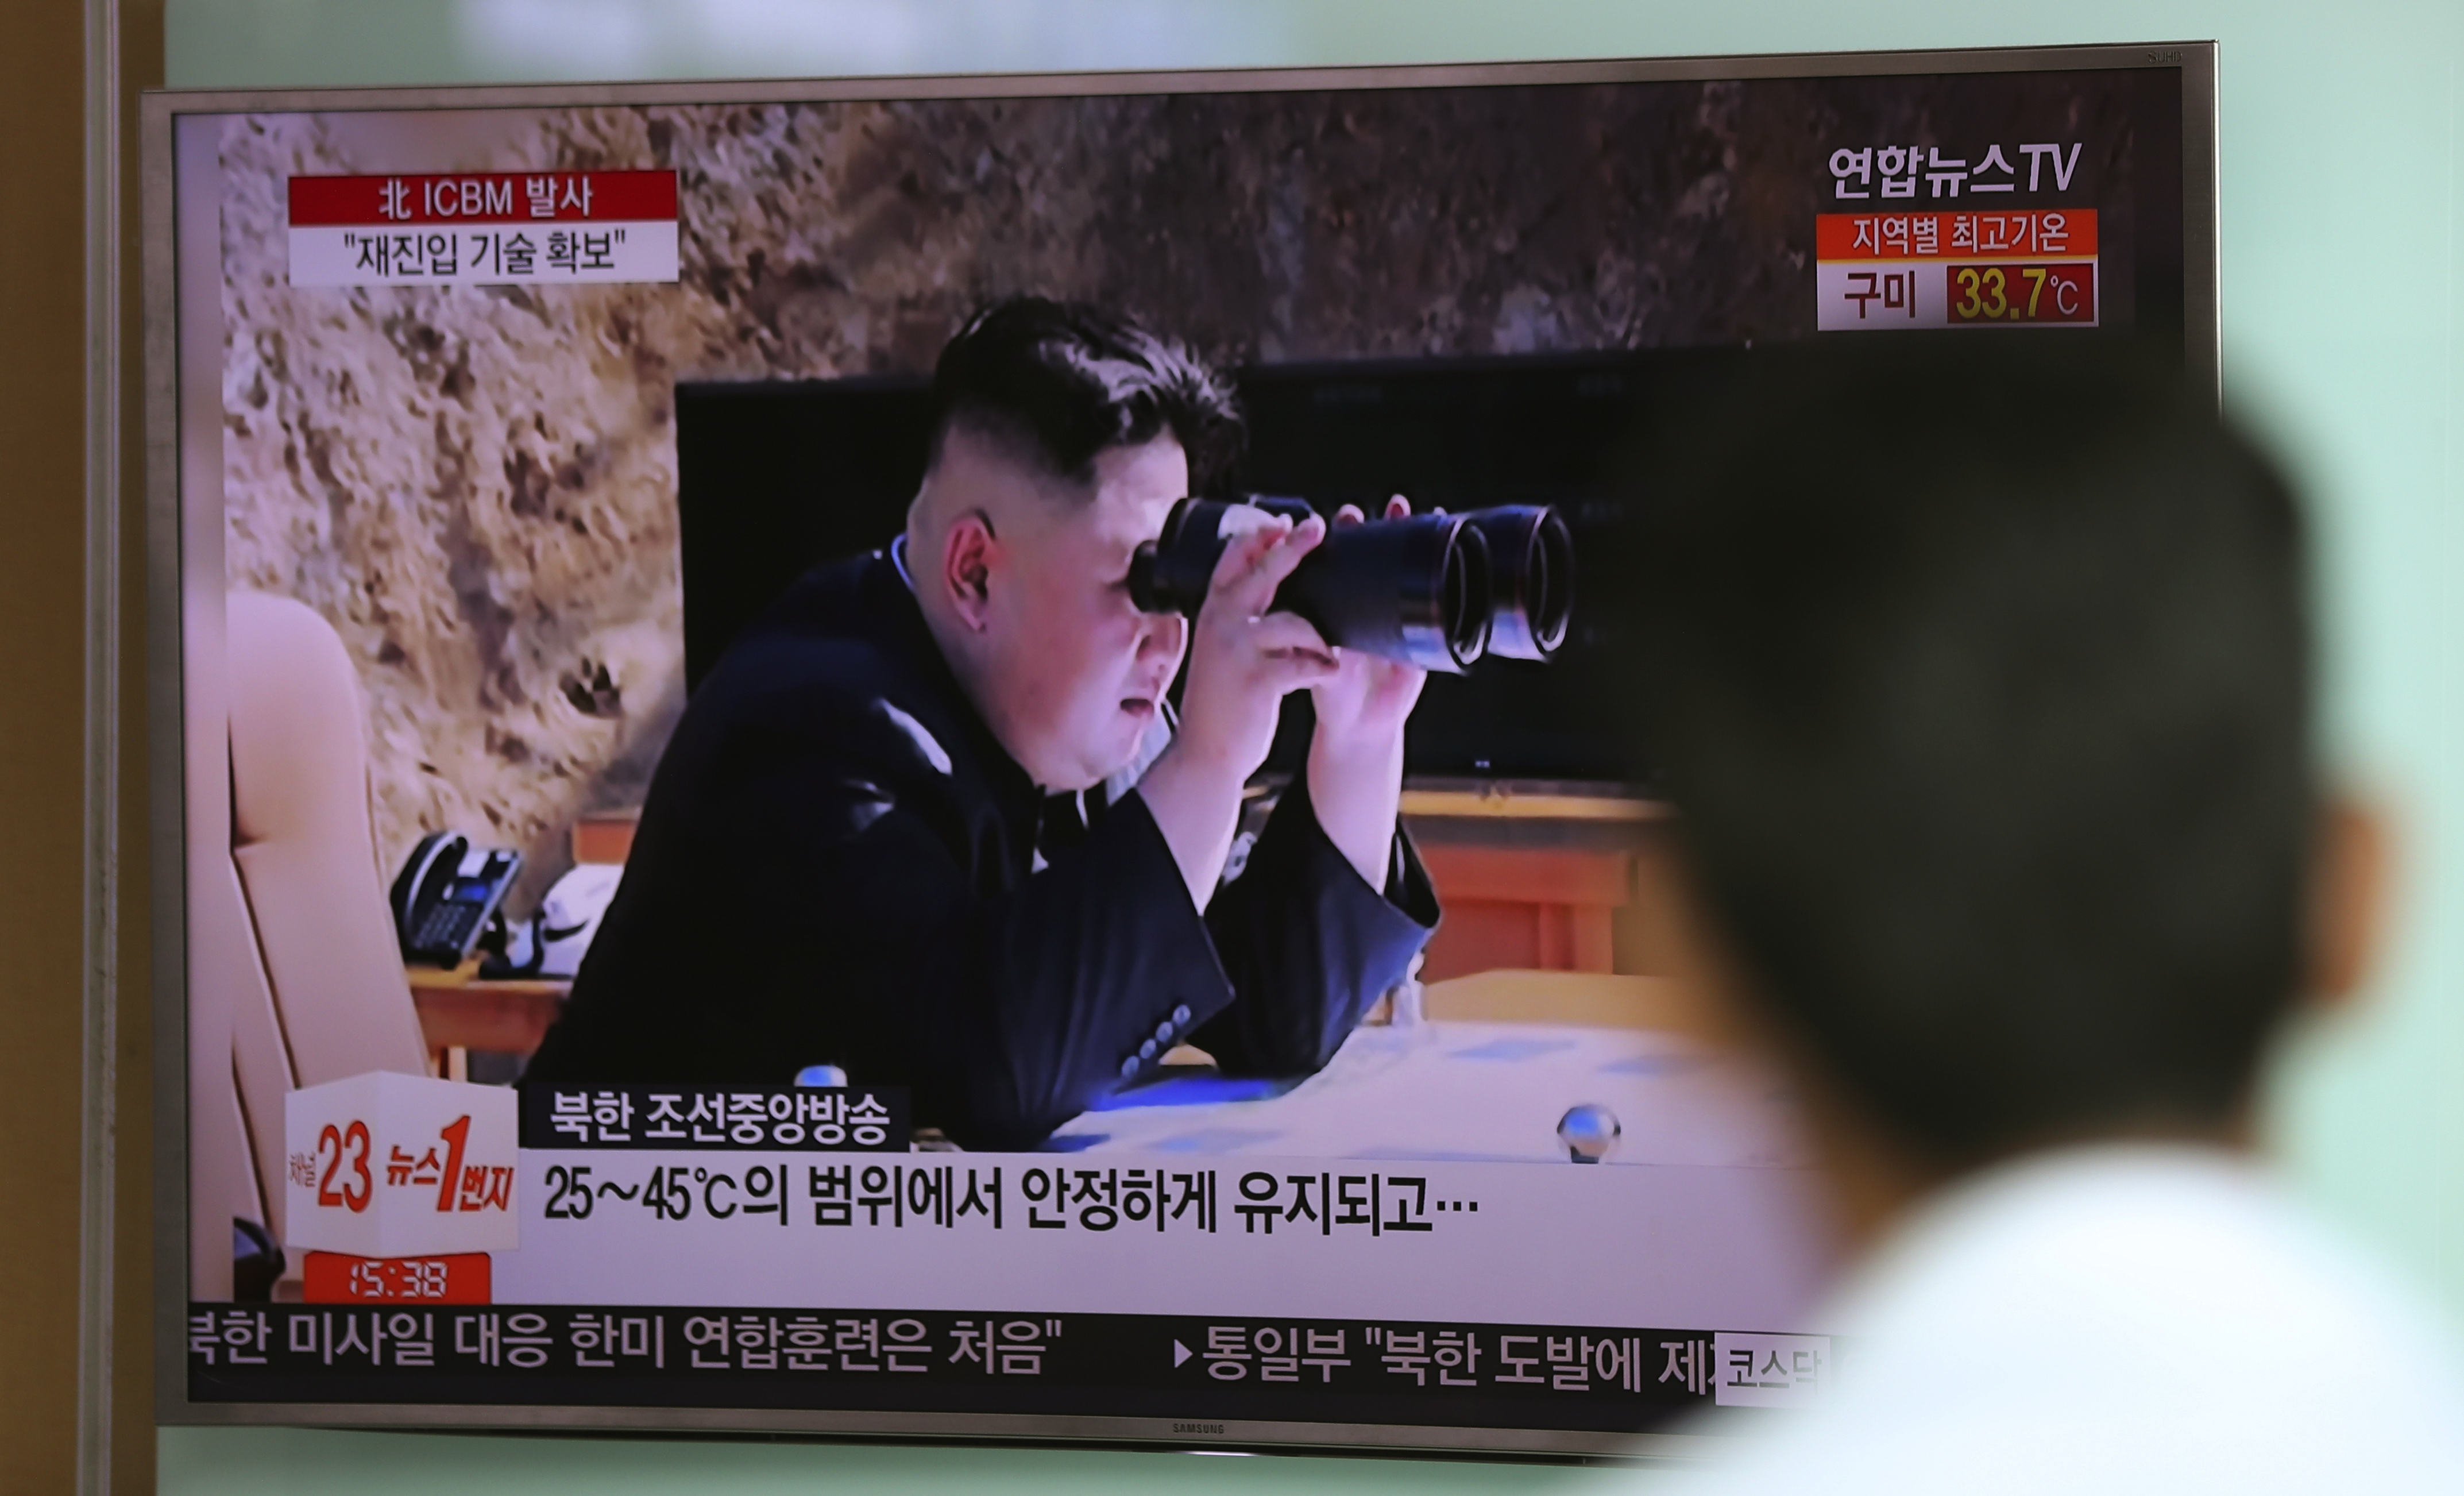 A man watches a TV screen showing a local news program reporting about North Korea's missile firing with an image of North Korean leader Kim Jong Un with a pair of binoculars, at Seoul Train Station in Seoul, South Korea, July 5, 2017.